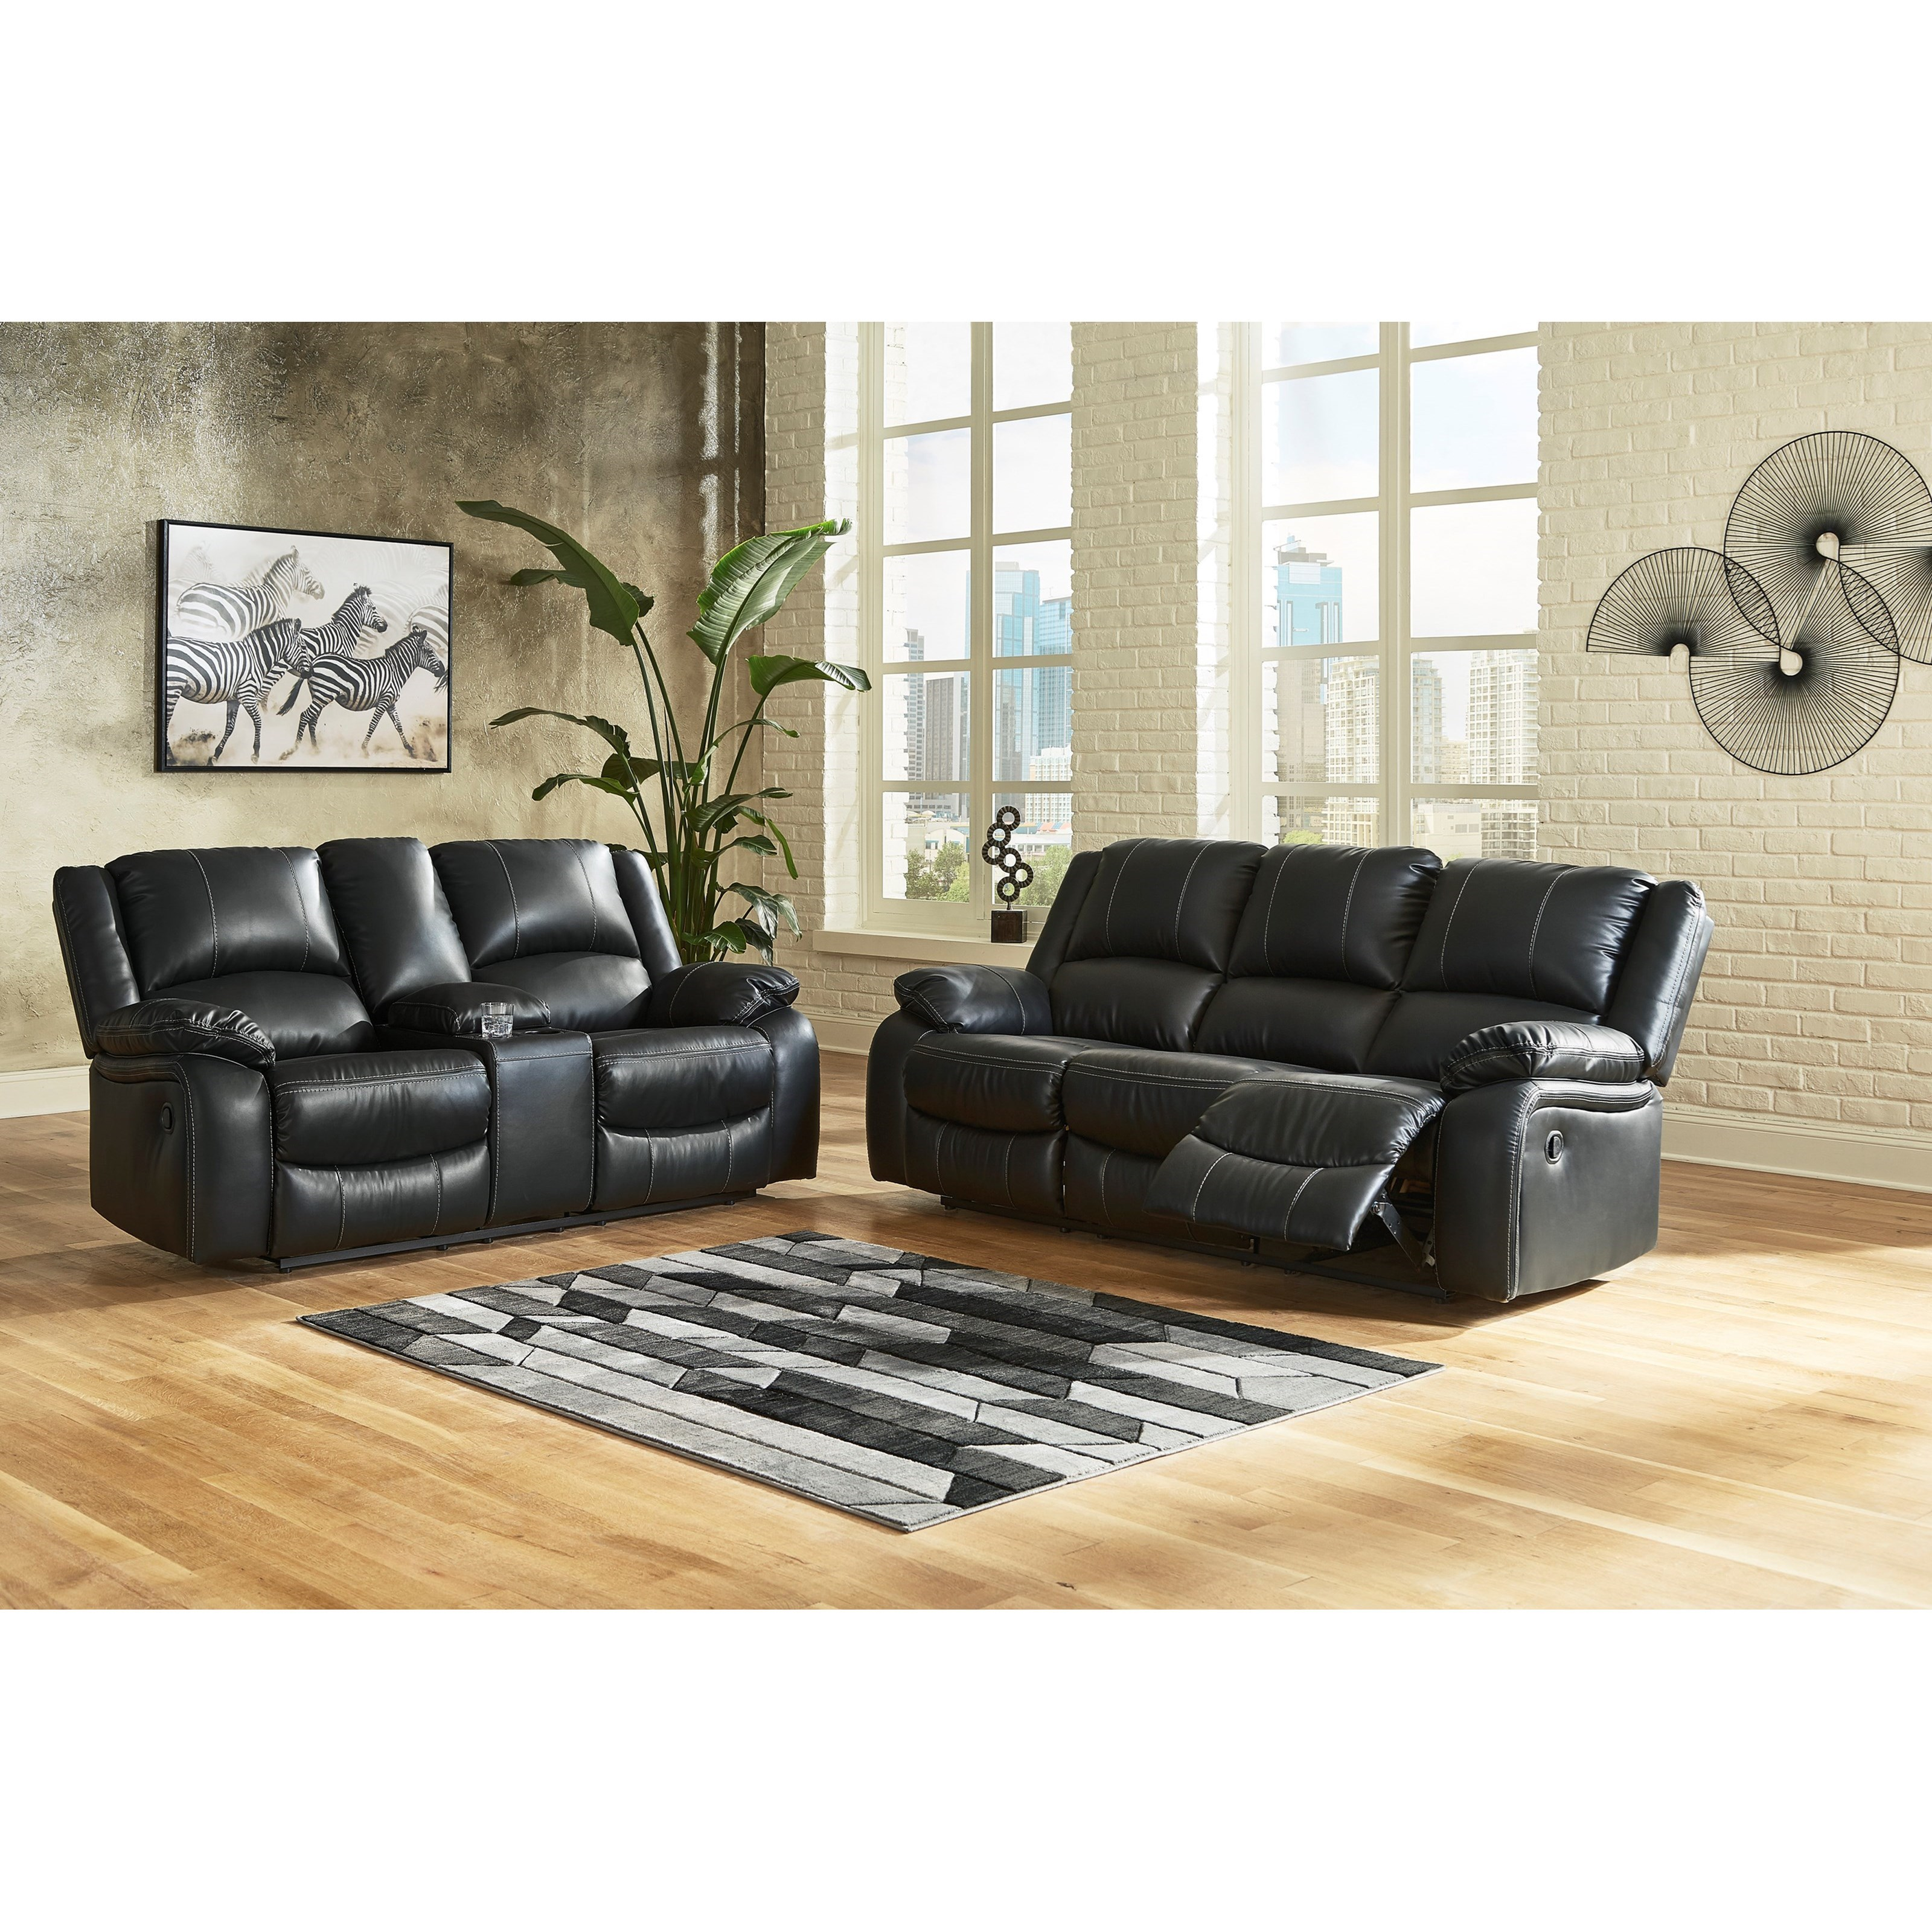 Calderwell Reclining Living Room Group by Signature Design by Ashley at Standard Furniture